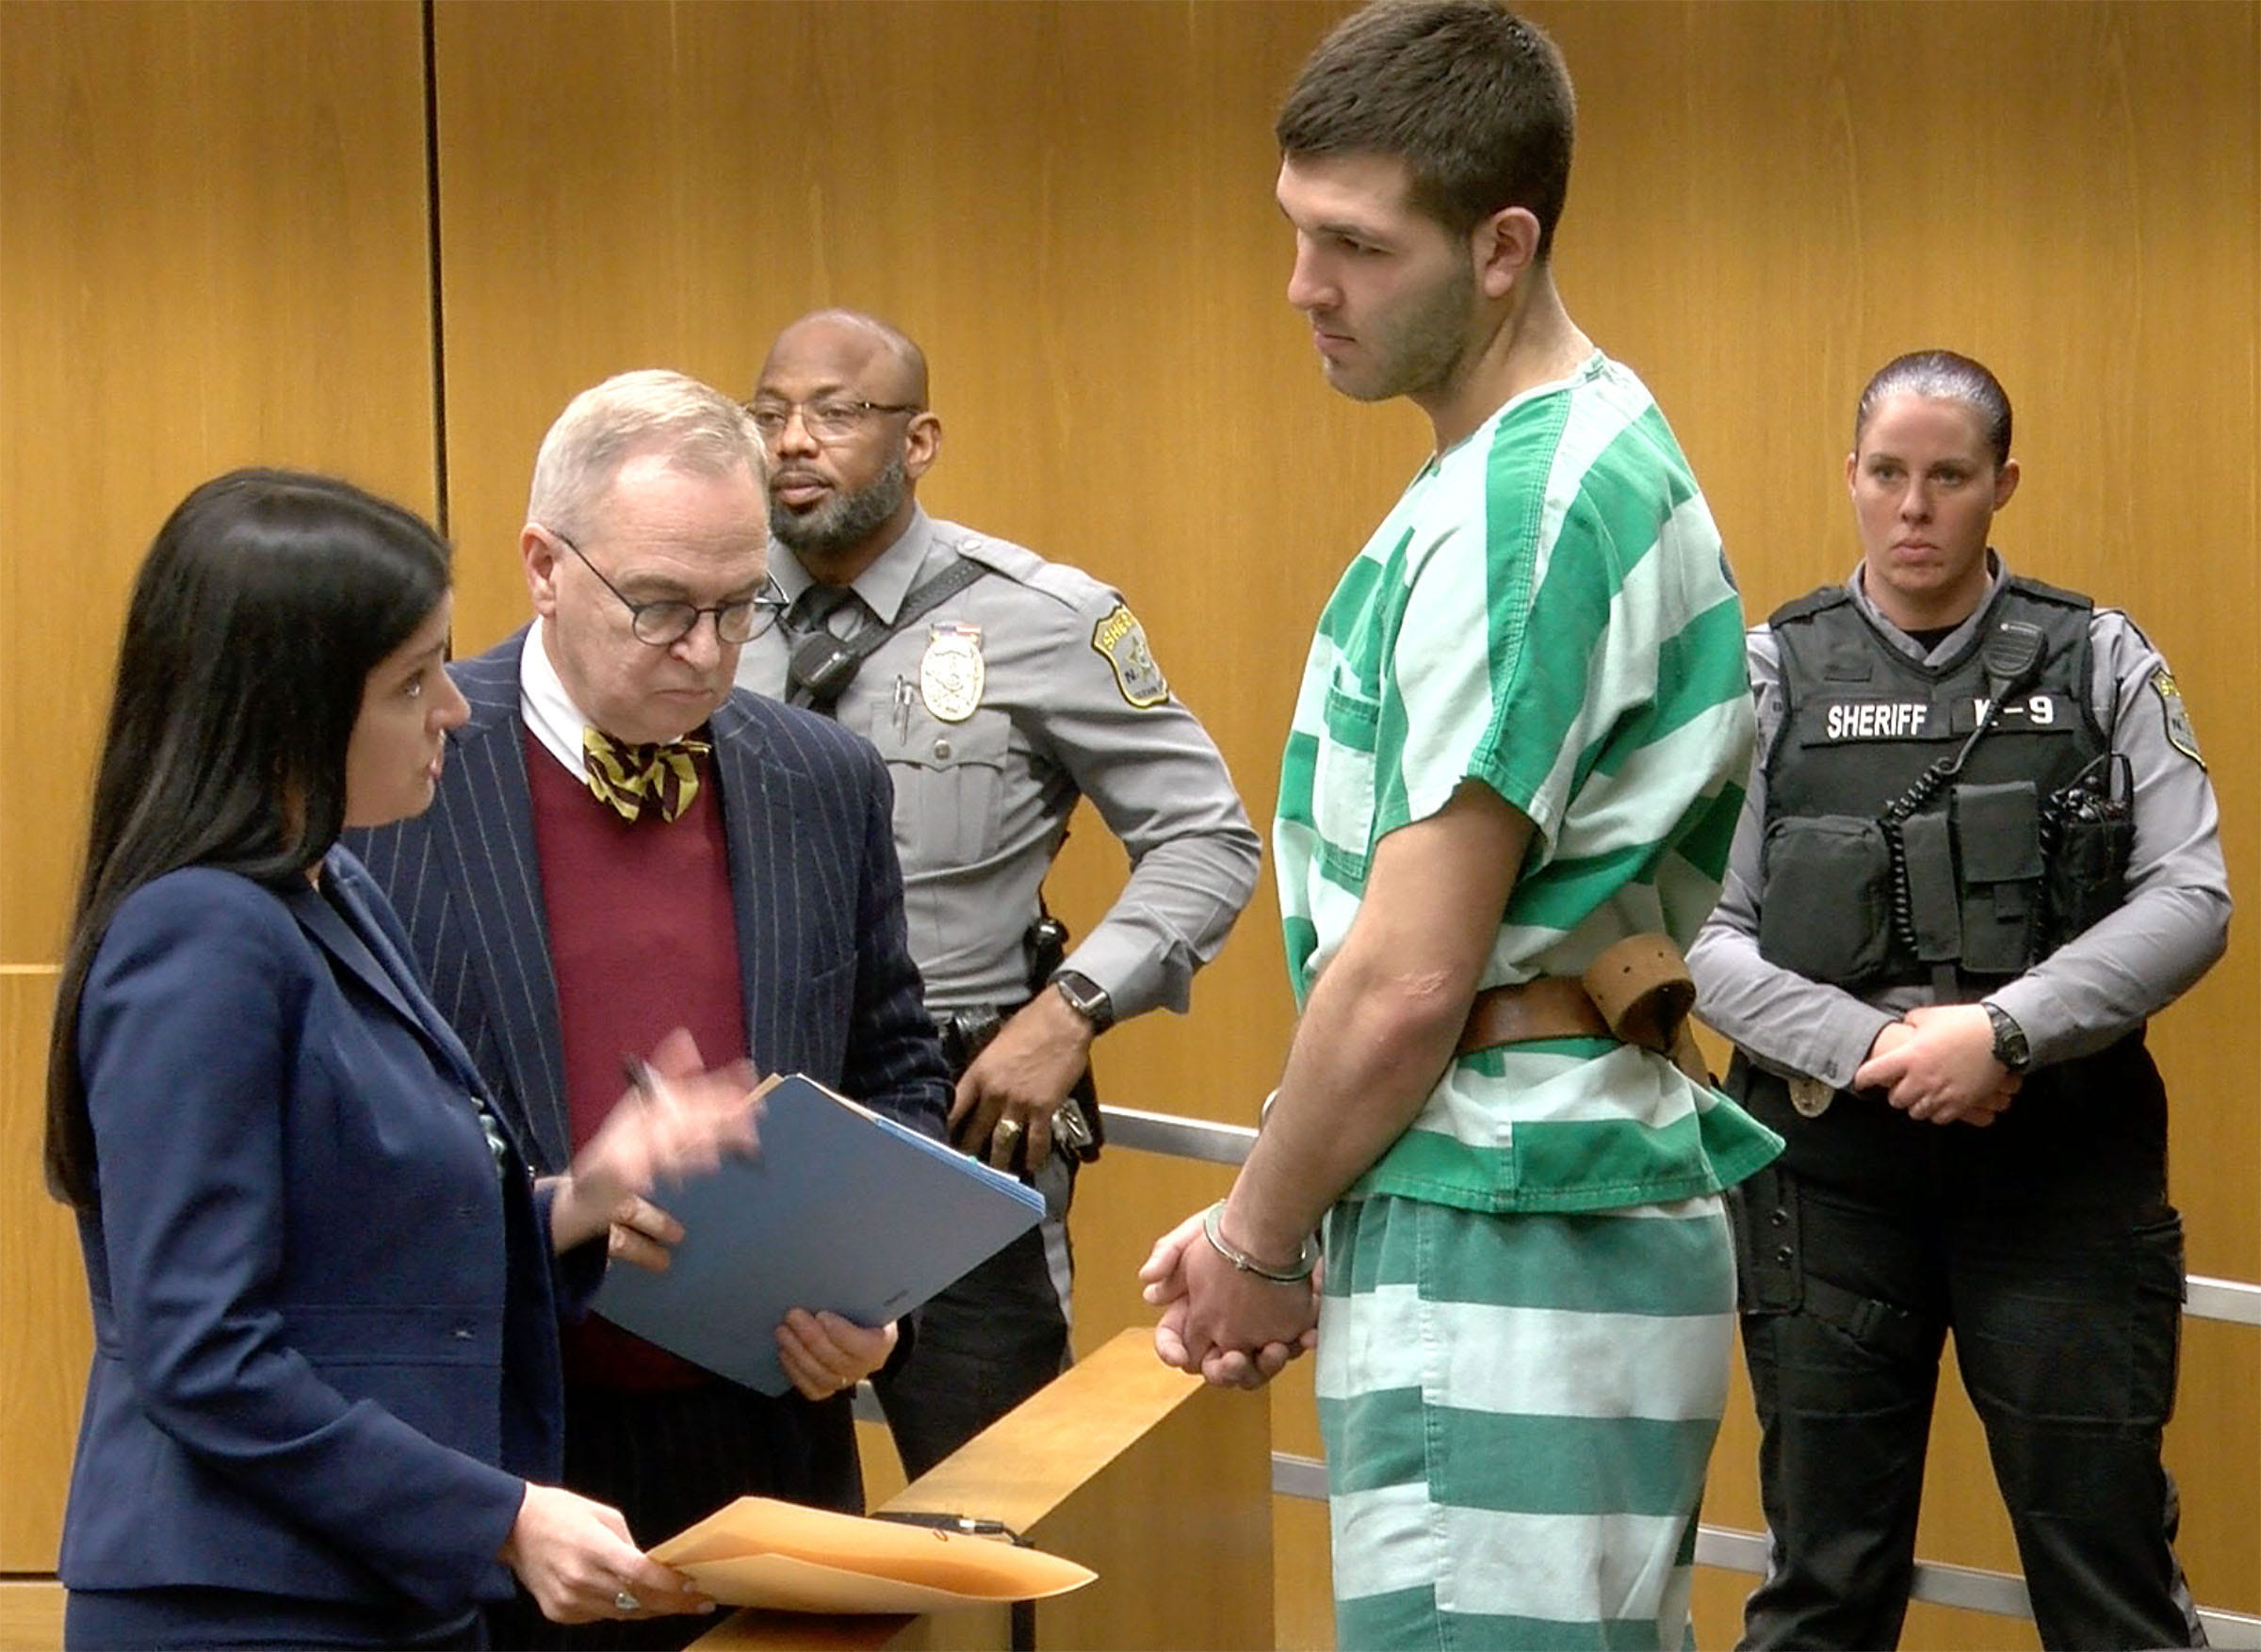 Anthony Comello, suspect in reputed mob boss Frank Cali murder, in court with 'MAGA' on palm